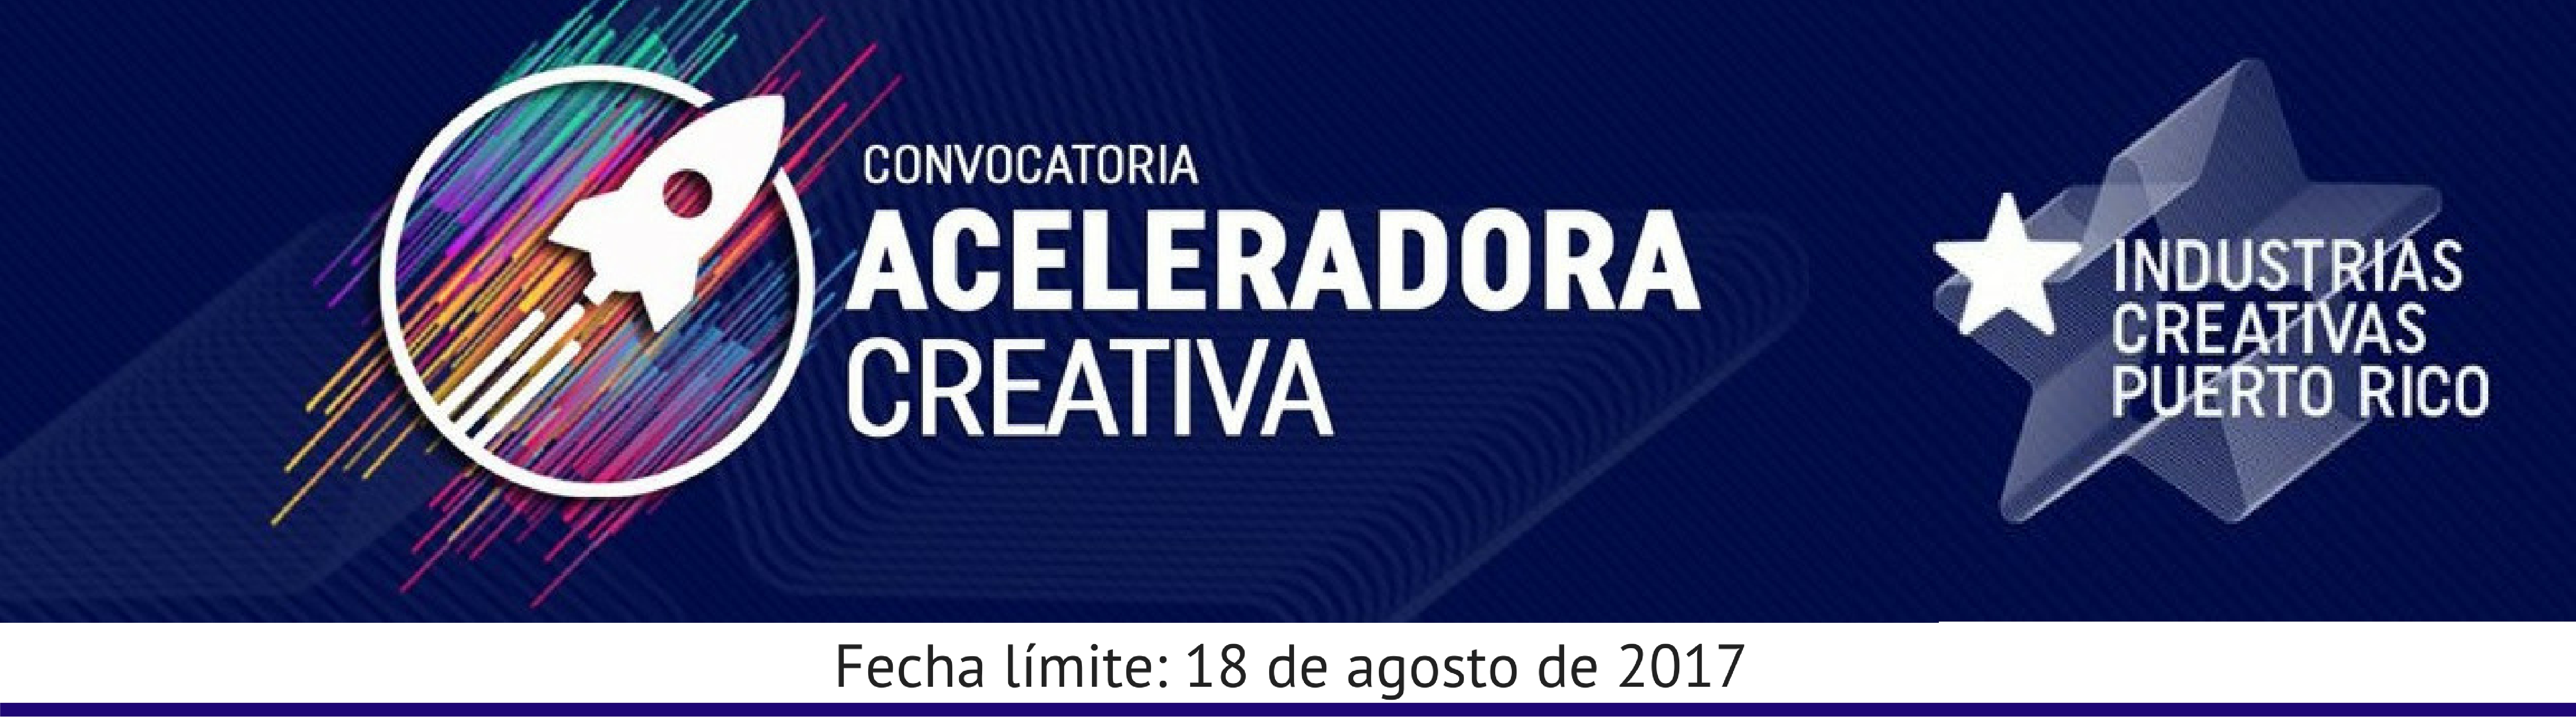 Copy of Industrias Creativas new 2